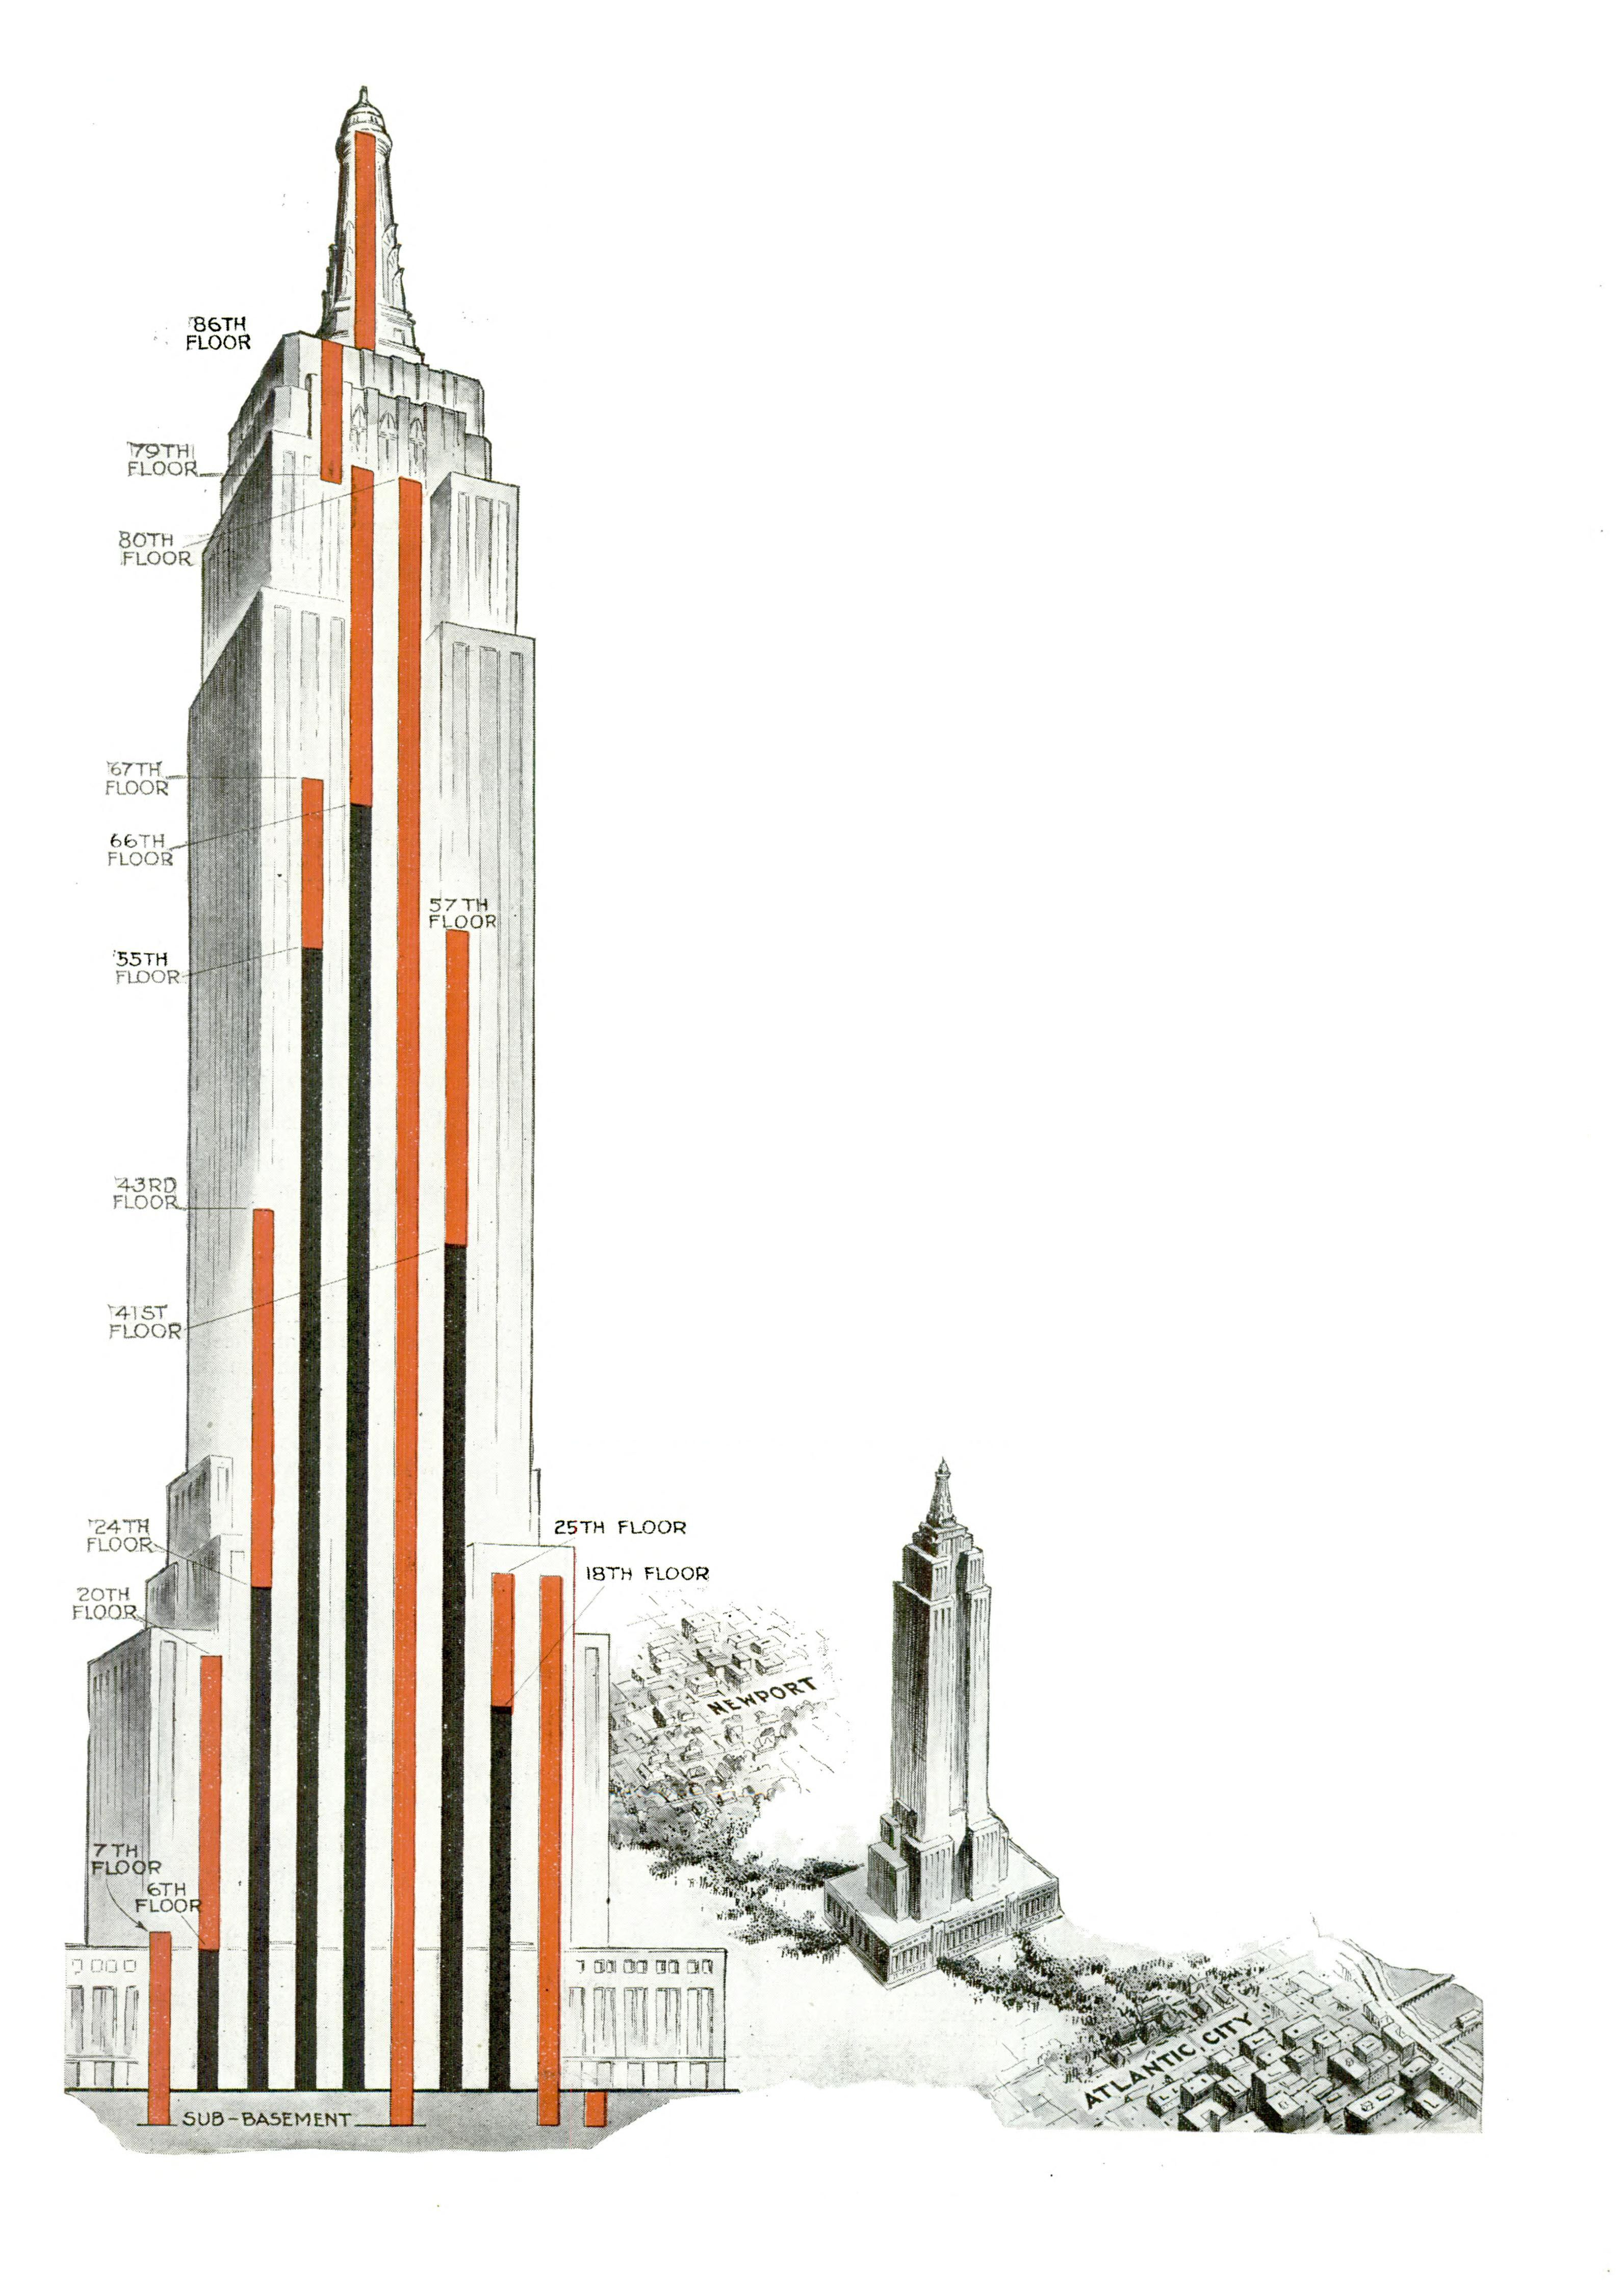 How Popular Science covered the Empire State Building's 1931